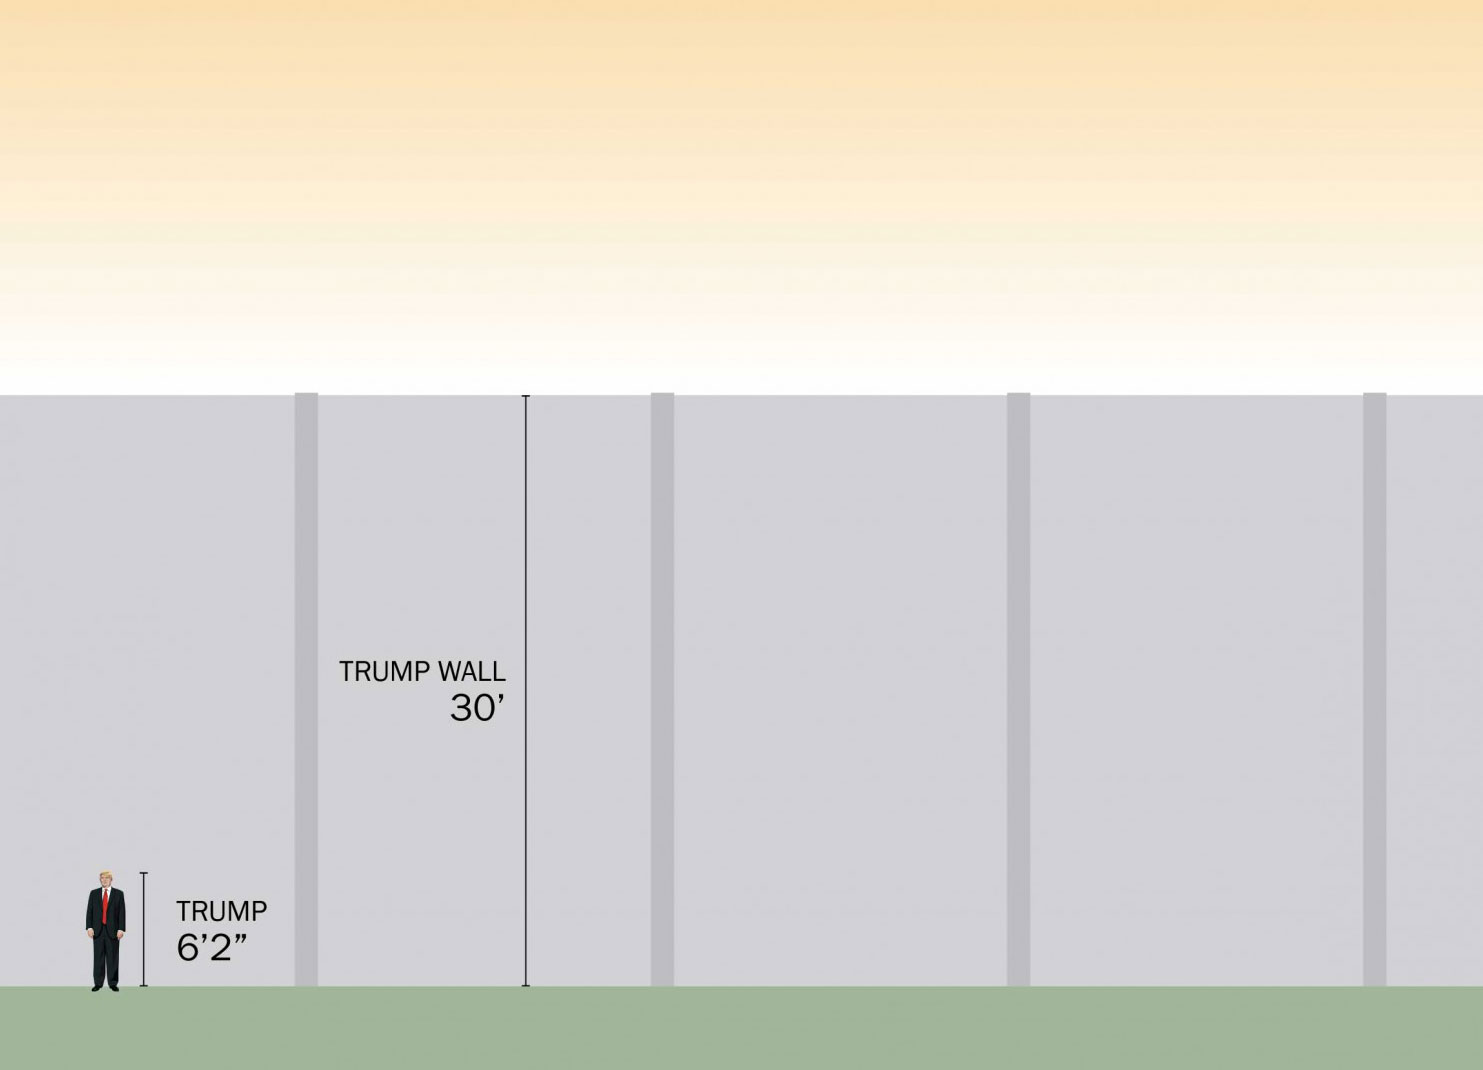 Illustration of Donald Trump's wall on the Mexican border as he described it in August 2015; the proposed height has fluctuated over time